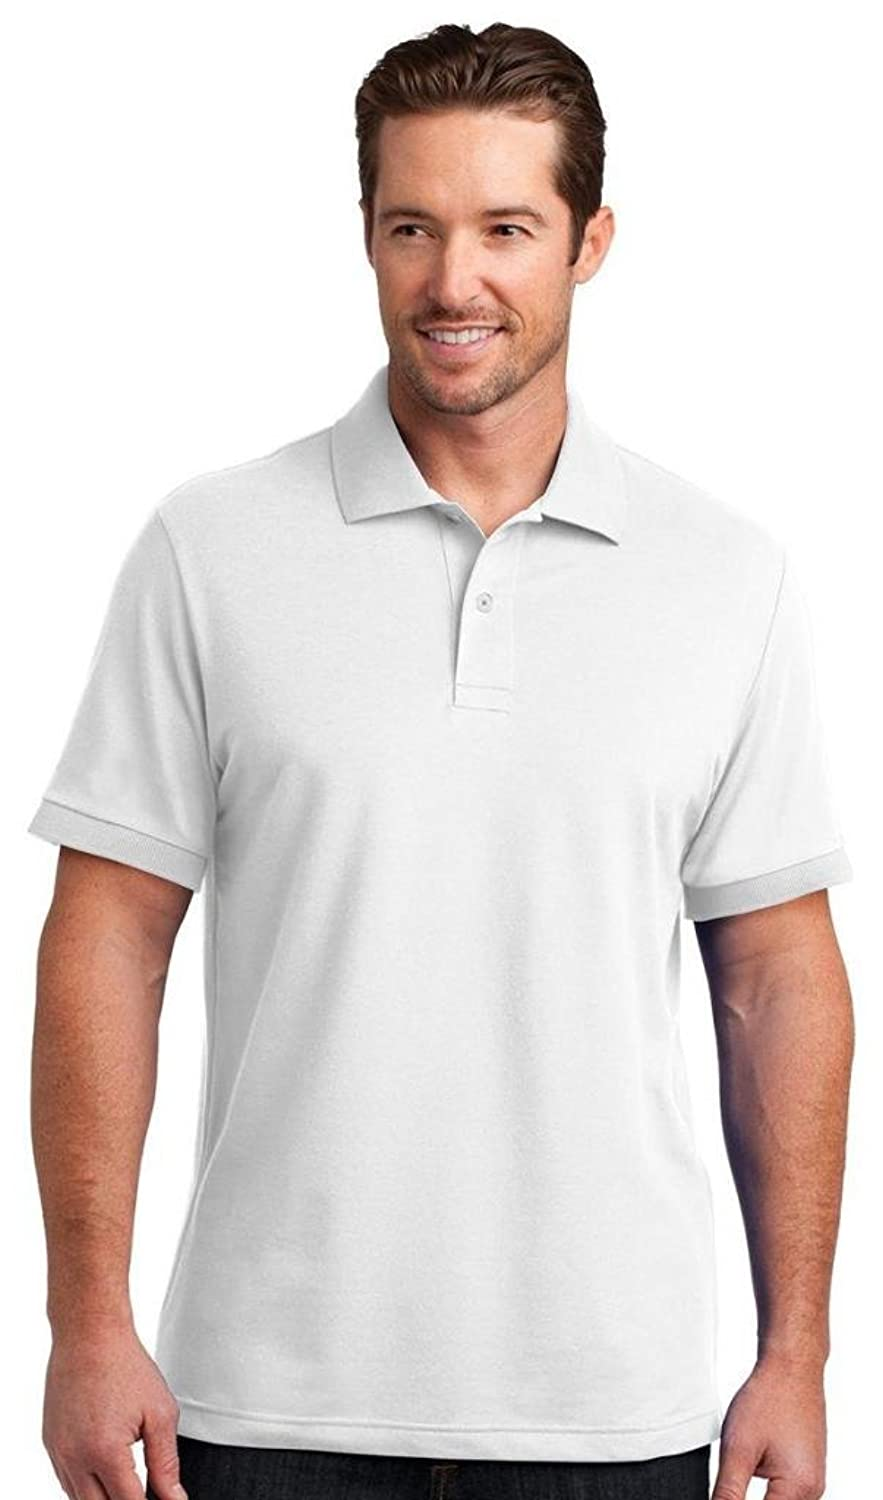 UltraClub Men's Cool - Dry Short Sleeve Pebble Knit Polo Shirt